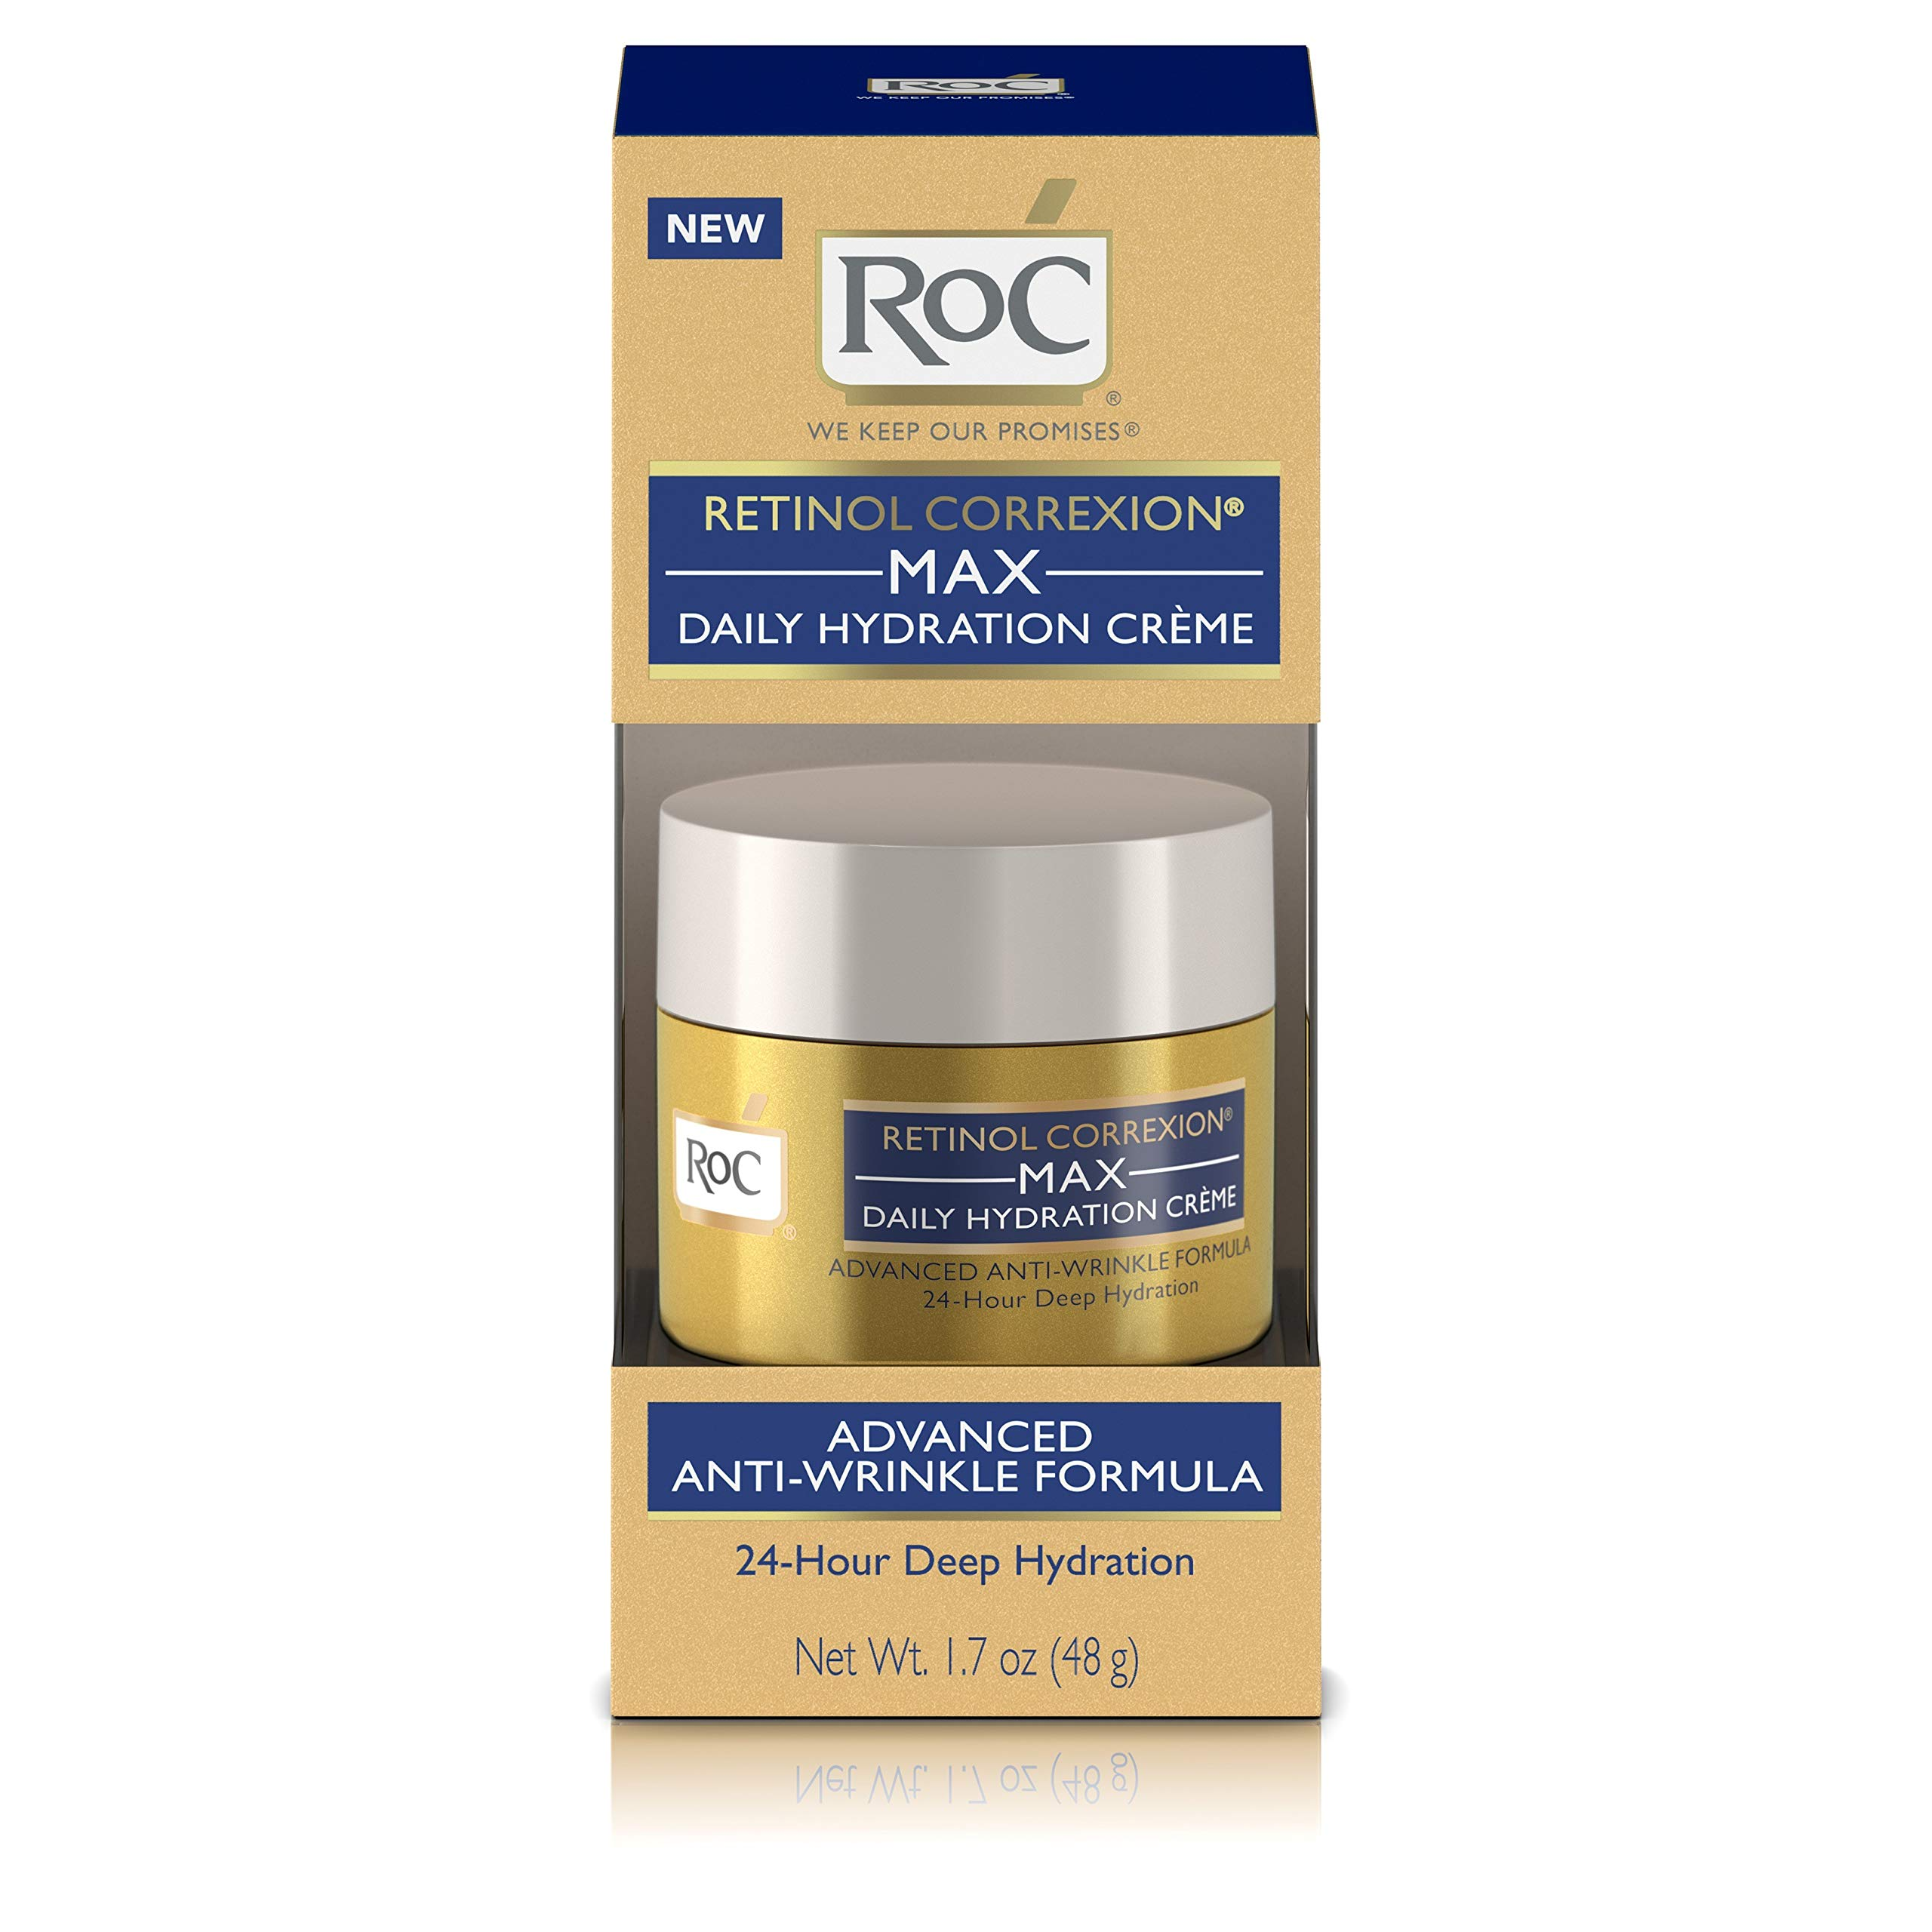 RoC Retinol Correxion Max Daily Hydration Anti-Aging Crème for 24-Hour Deep Hydration, Advanced Anti-Wrinkle Moisturizer Made with Retinol & Hyaluronic Acid, 1.7 oz by RoC